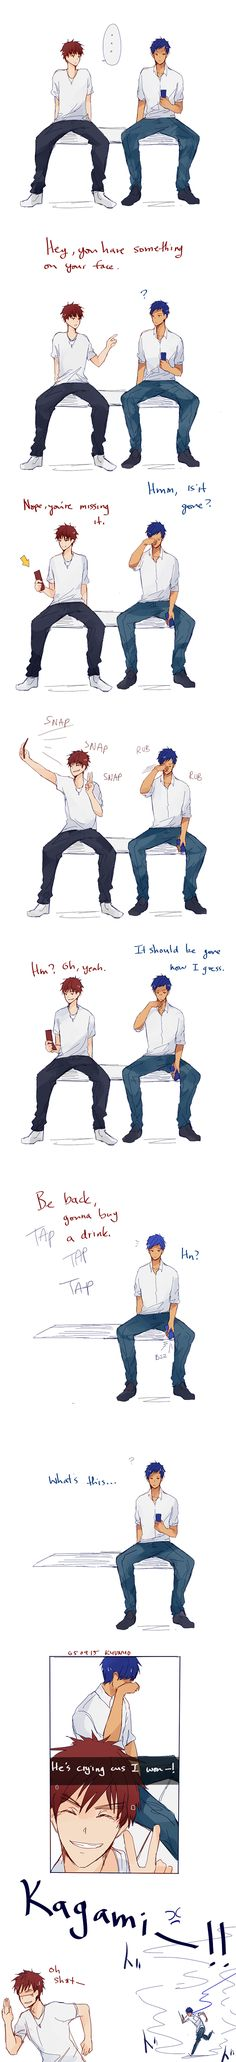 KAGAMI TAIGA VS AOMINE DAIKI !!! holy Shit he pranked him!!! Hahaha This is so funny!!!!